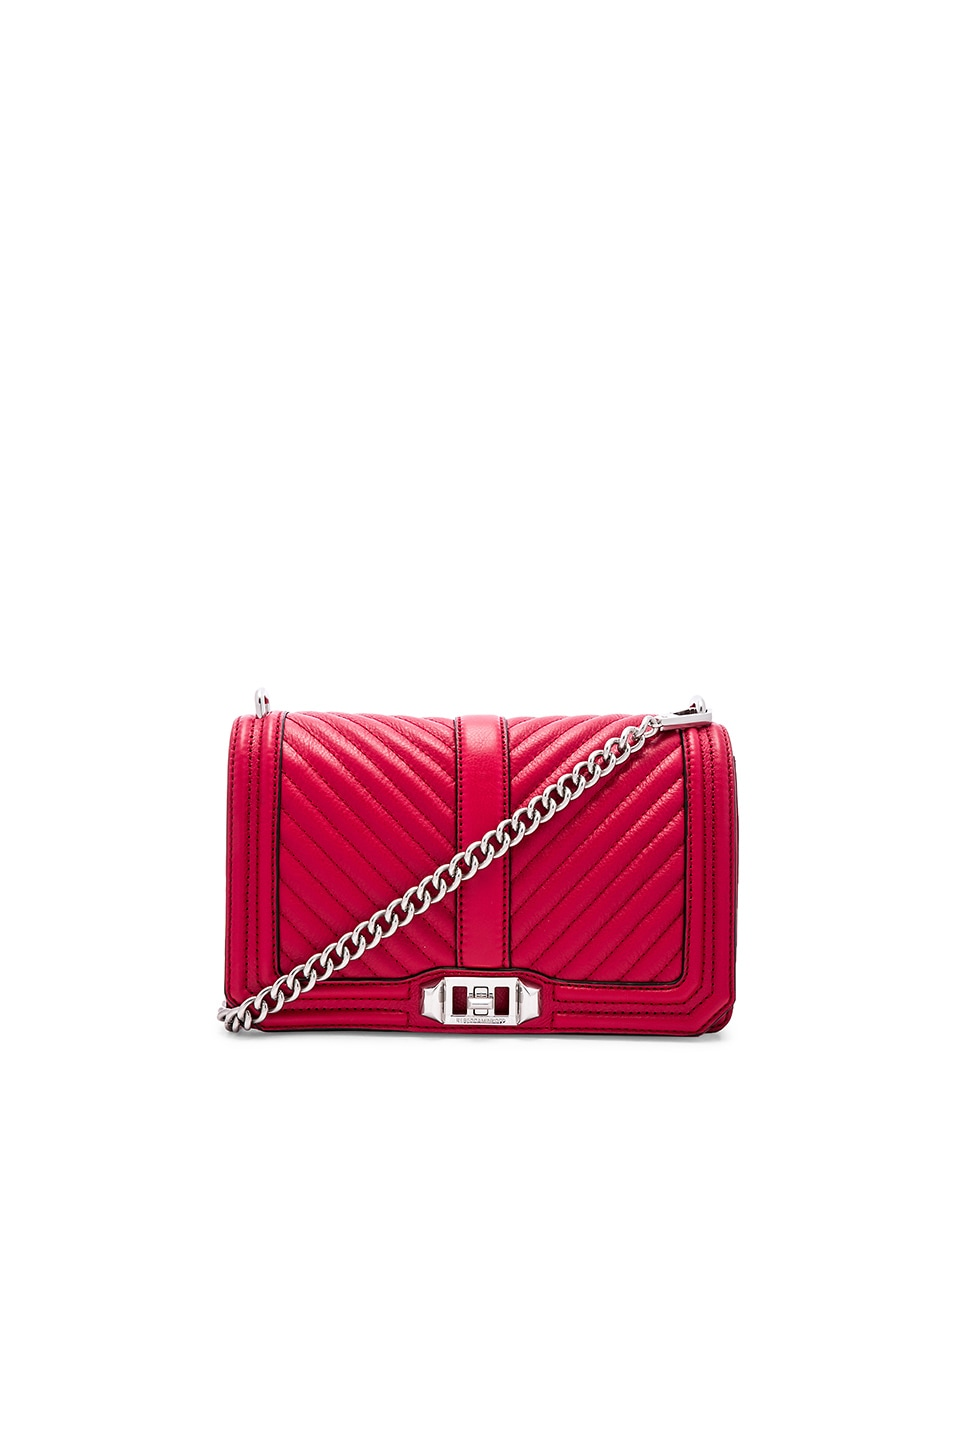 Rebecca Minkoff Chevron Quilted Love Crossbody Bag in Scarlet